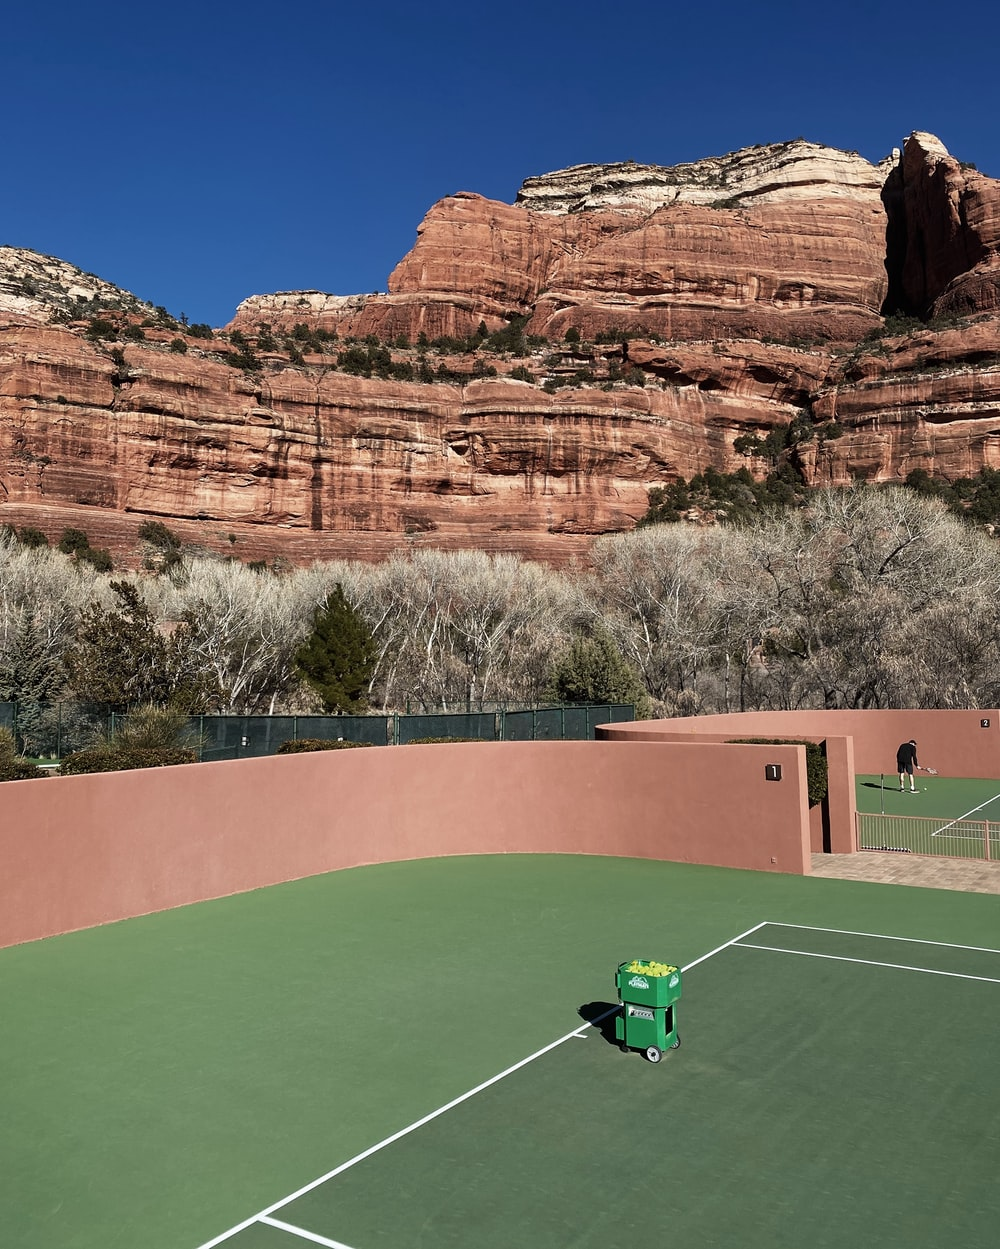 green golf course near brown rock formation during daytime